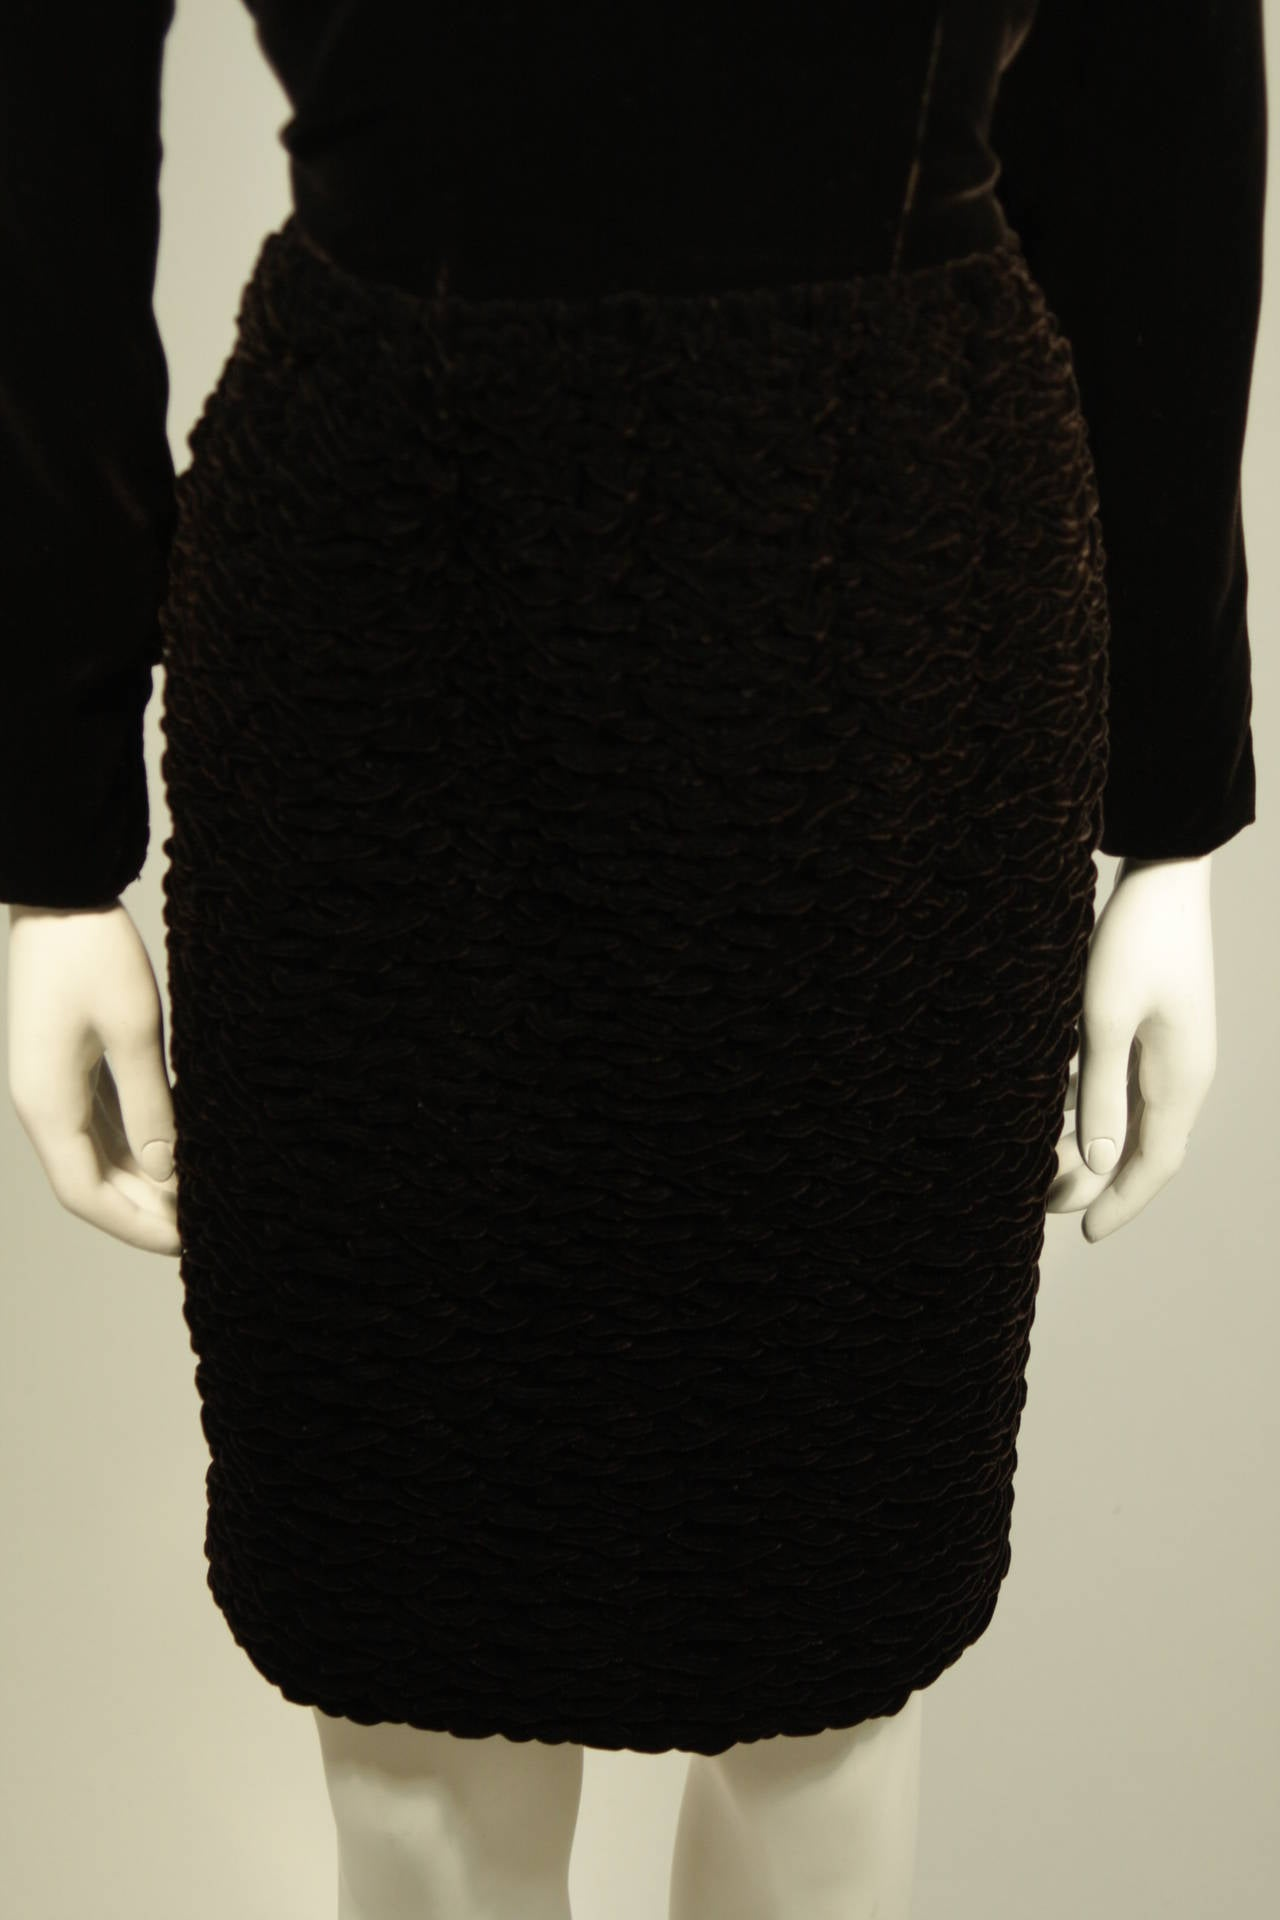 Oscar De La Renta Brown Velvet Cocktail Dress with Ruched Skirt Size 6 8